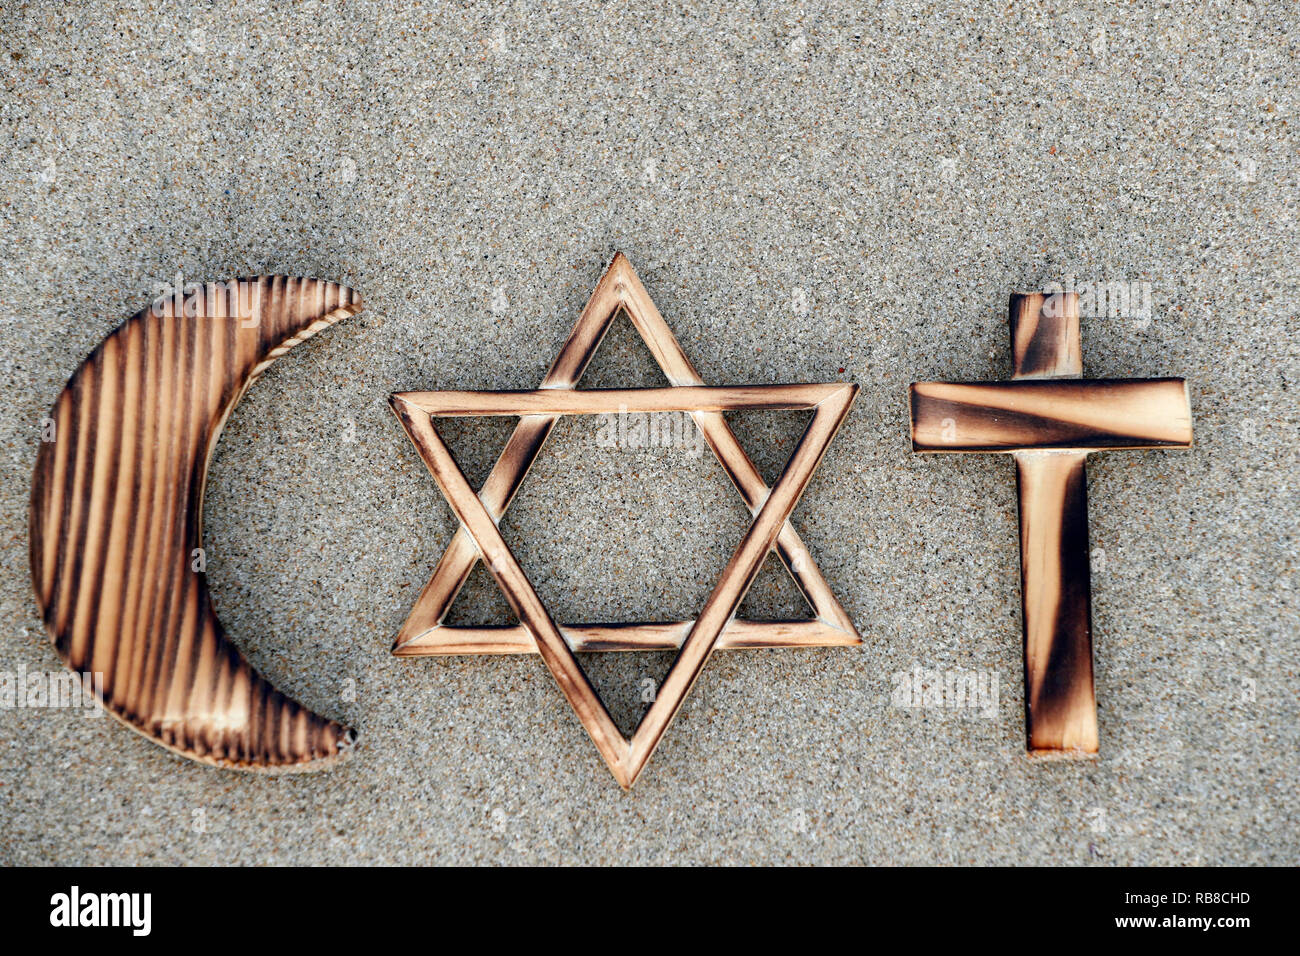 Symboles interreligieux. Christianity, Islam, Judaism 3 monotheistic religions. Jewish Star, Cross and Crescent : Interreligious symbols. - Stock Image